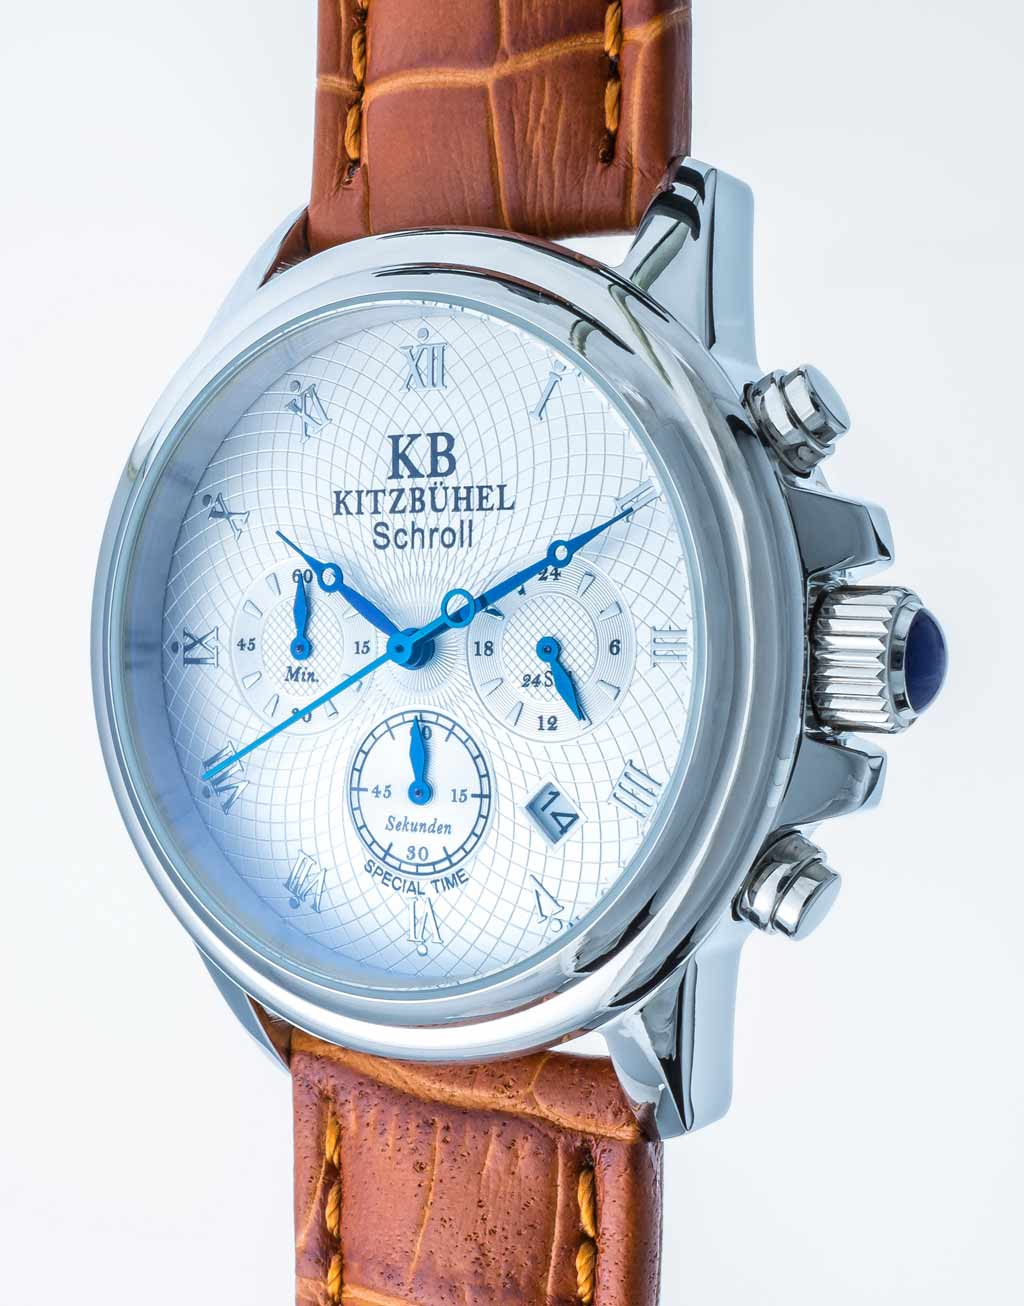 KB Watch – Special Time